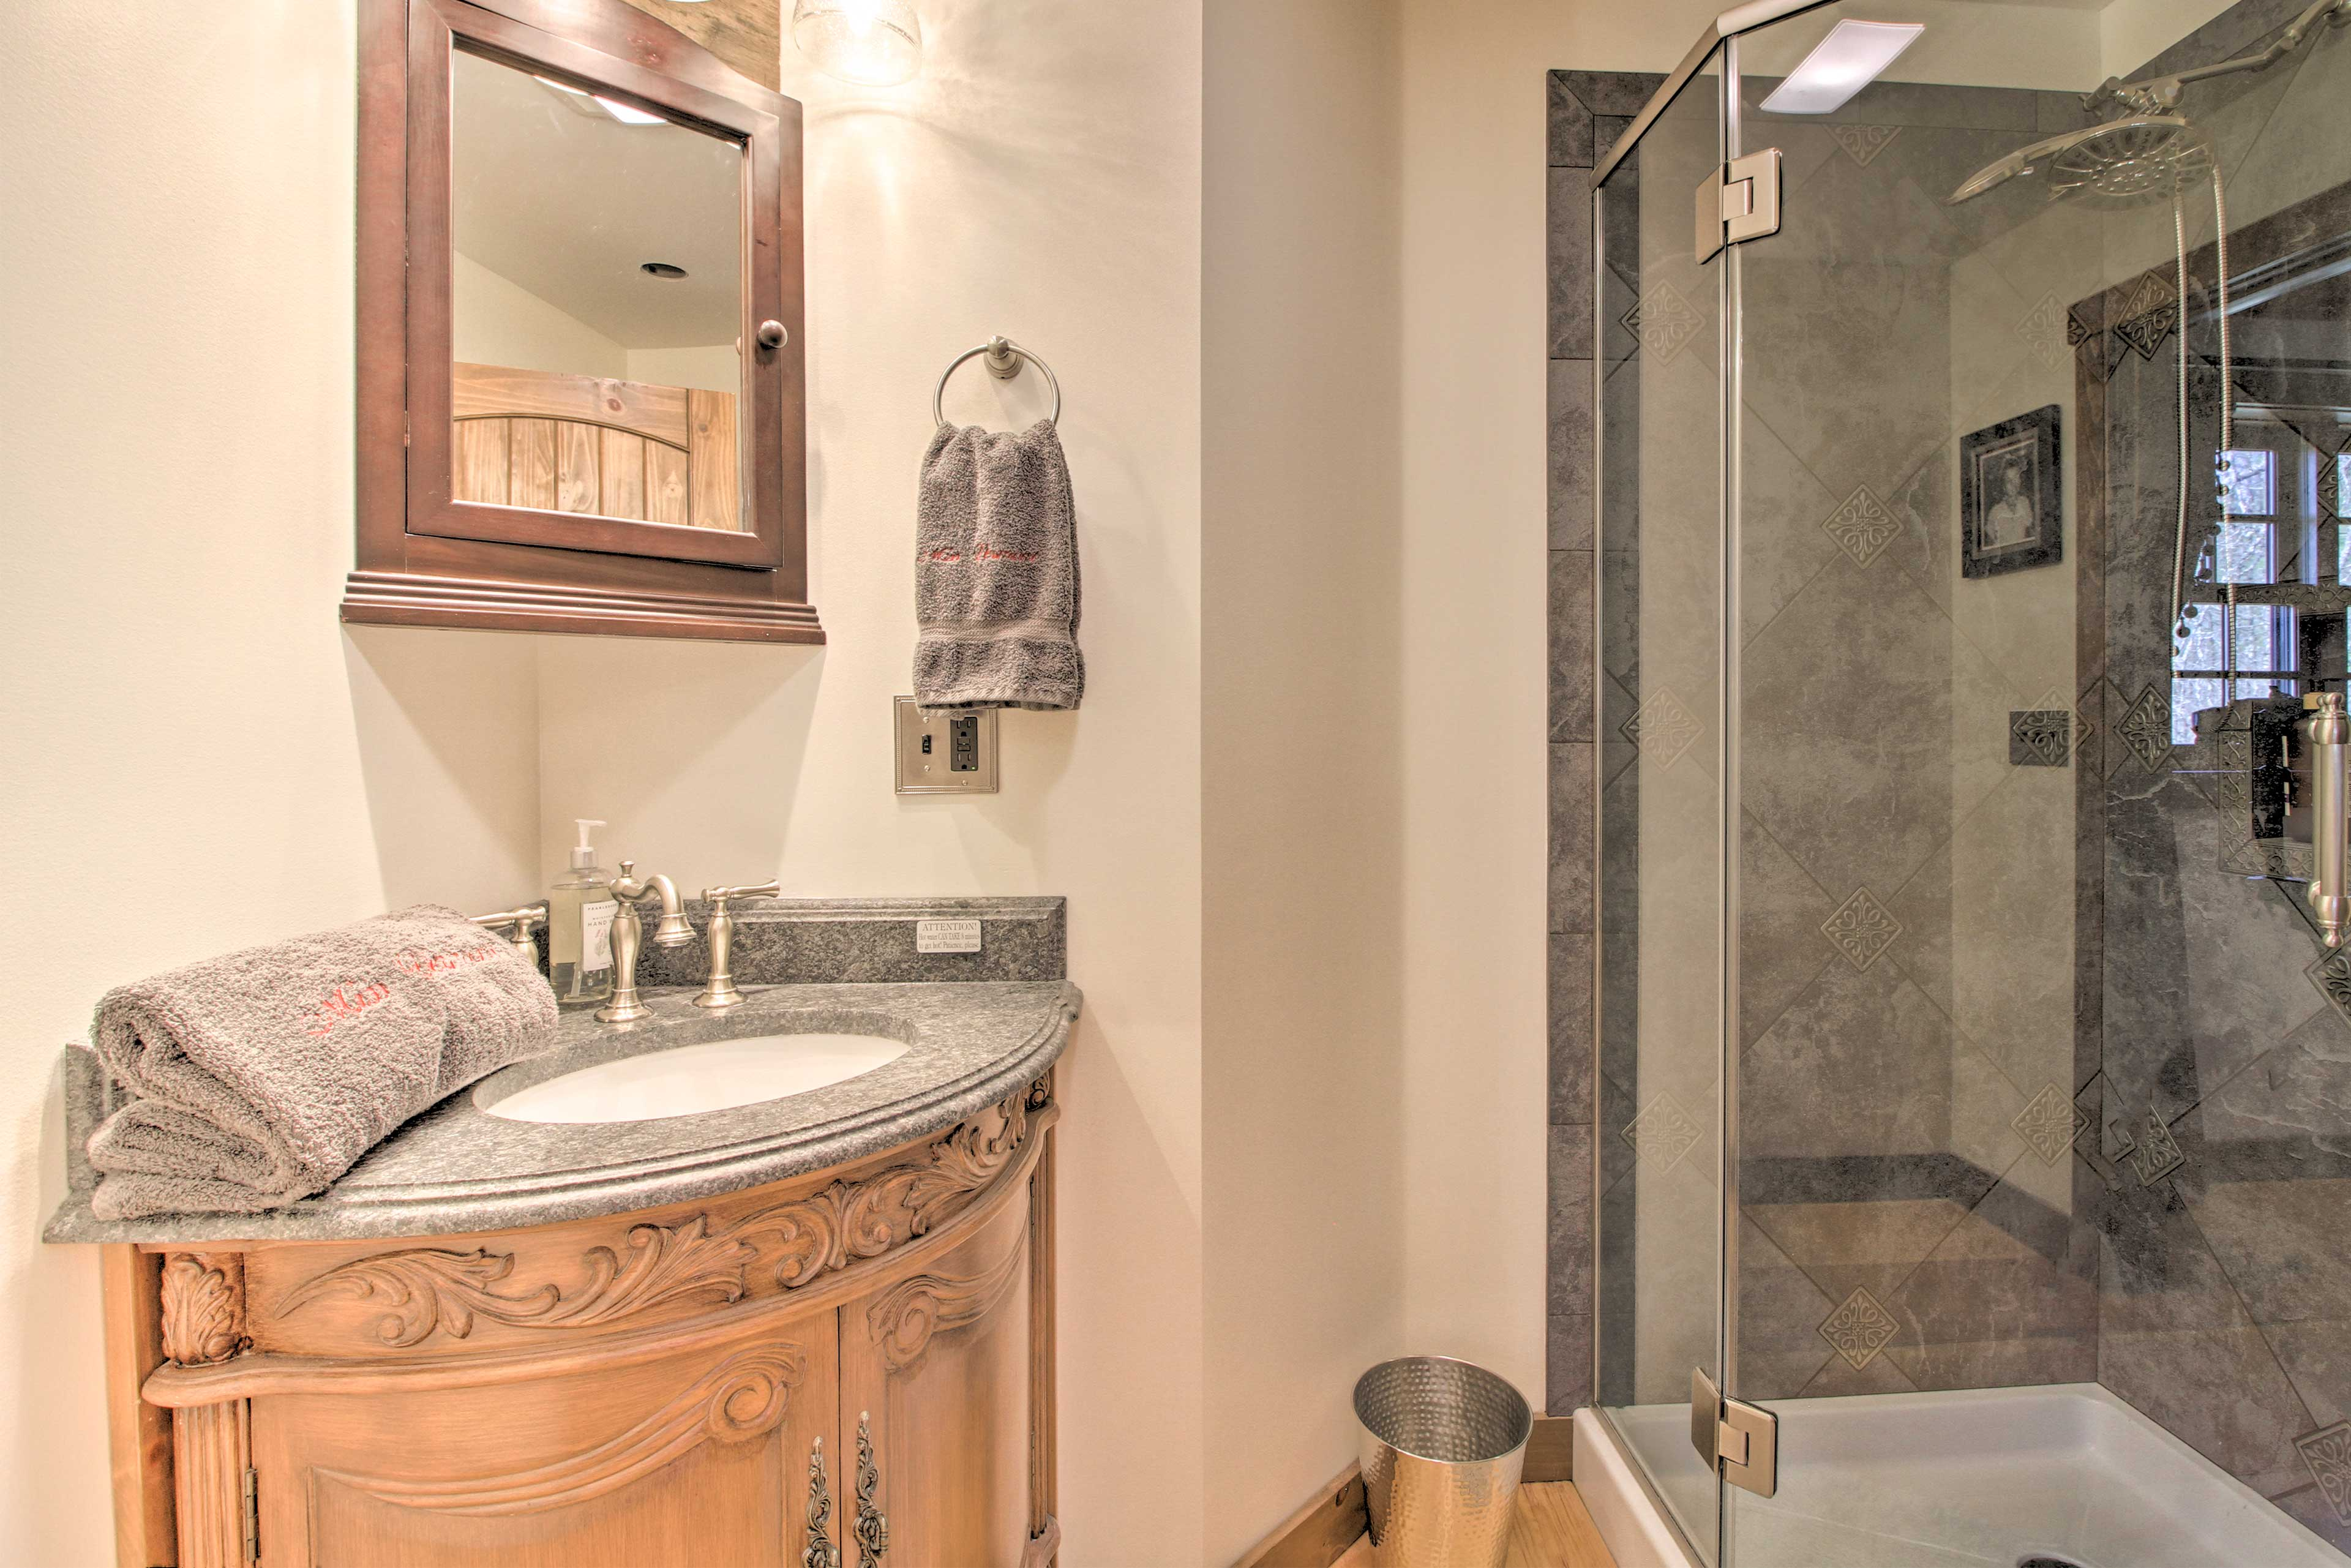 The master bathroom has a walk-in shower.